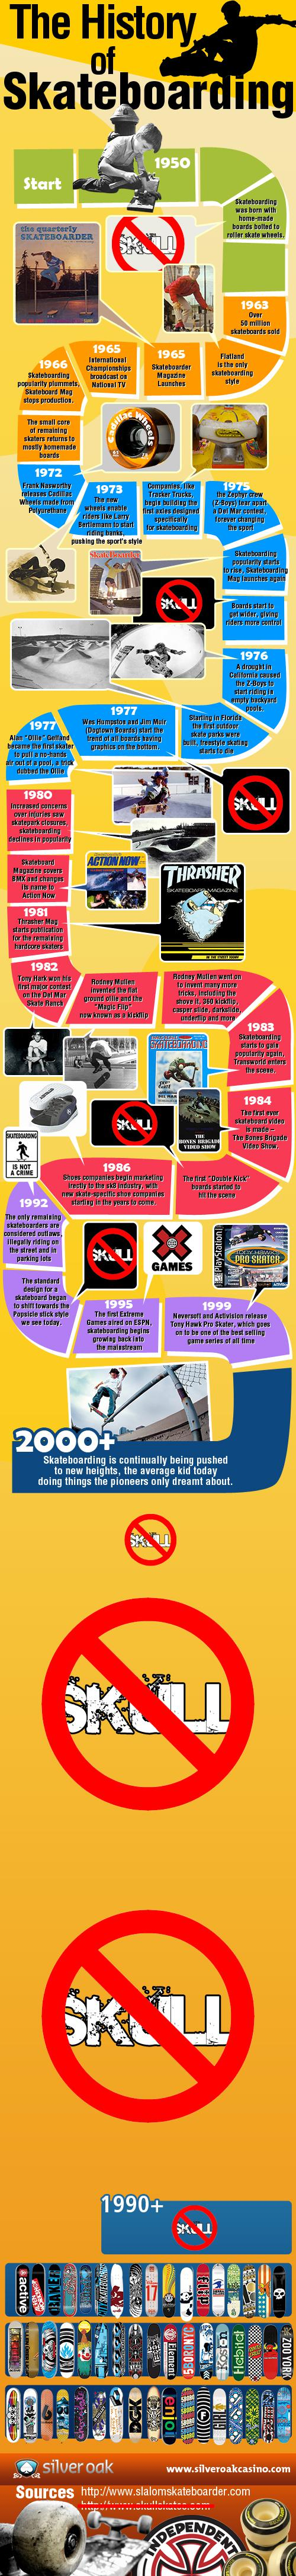 history-of-skateboarding-infographic